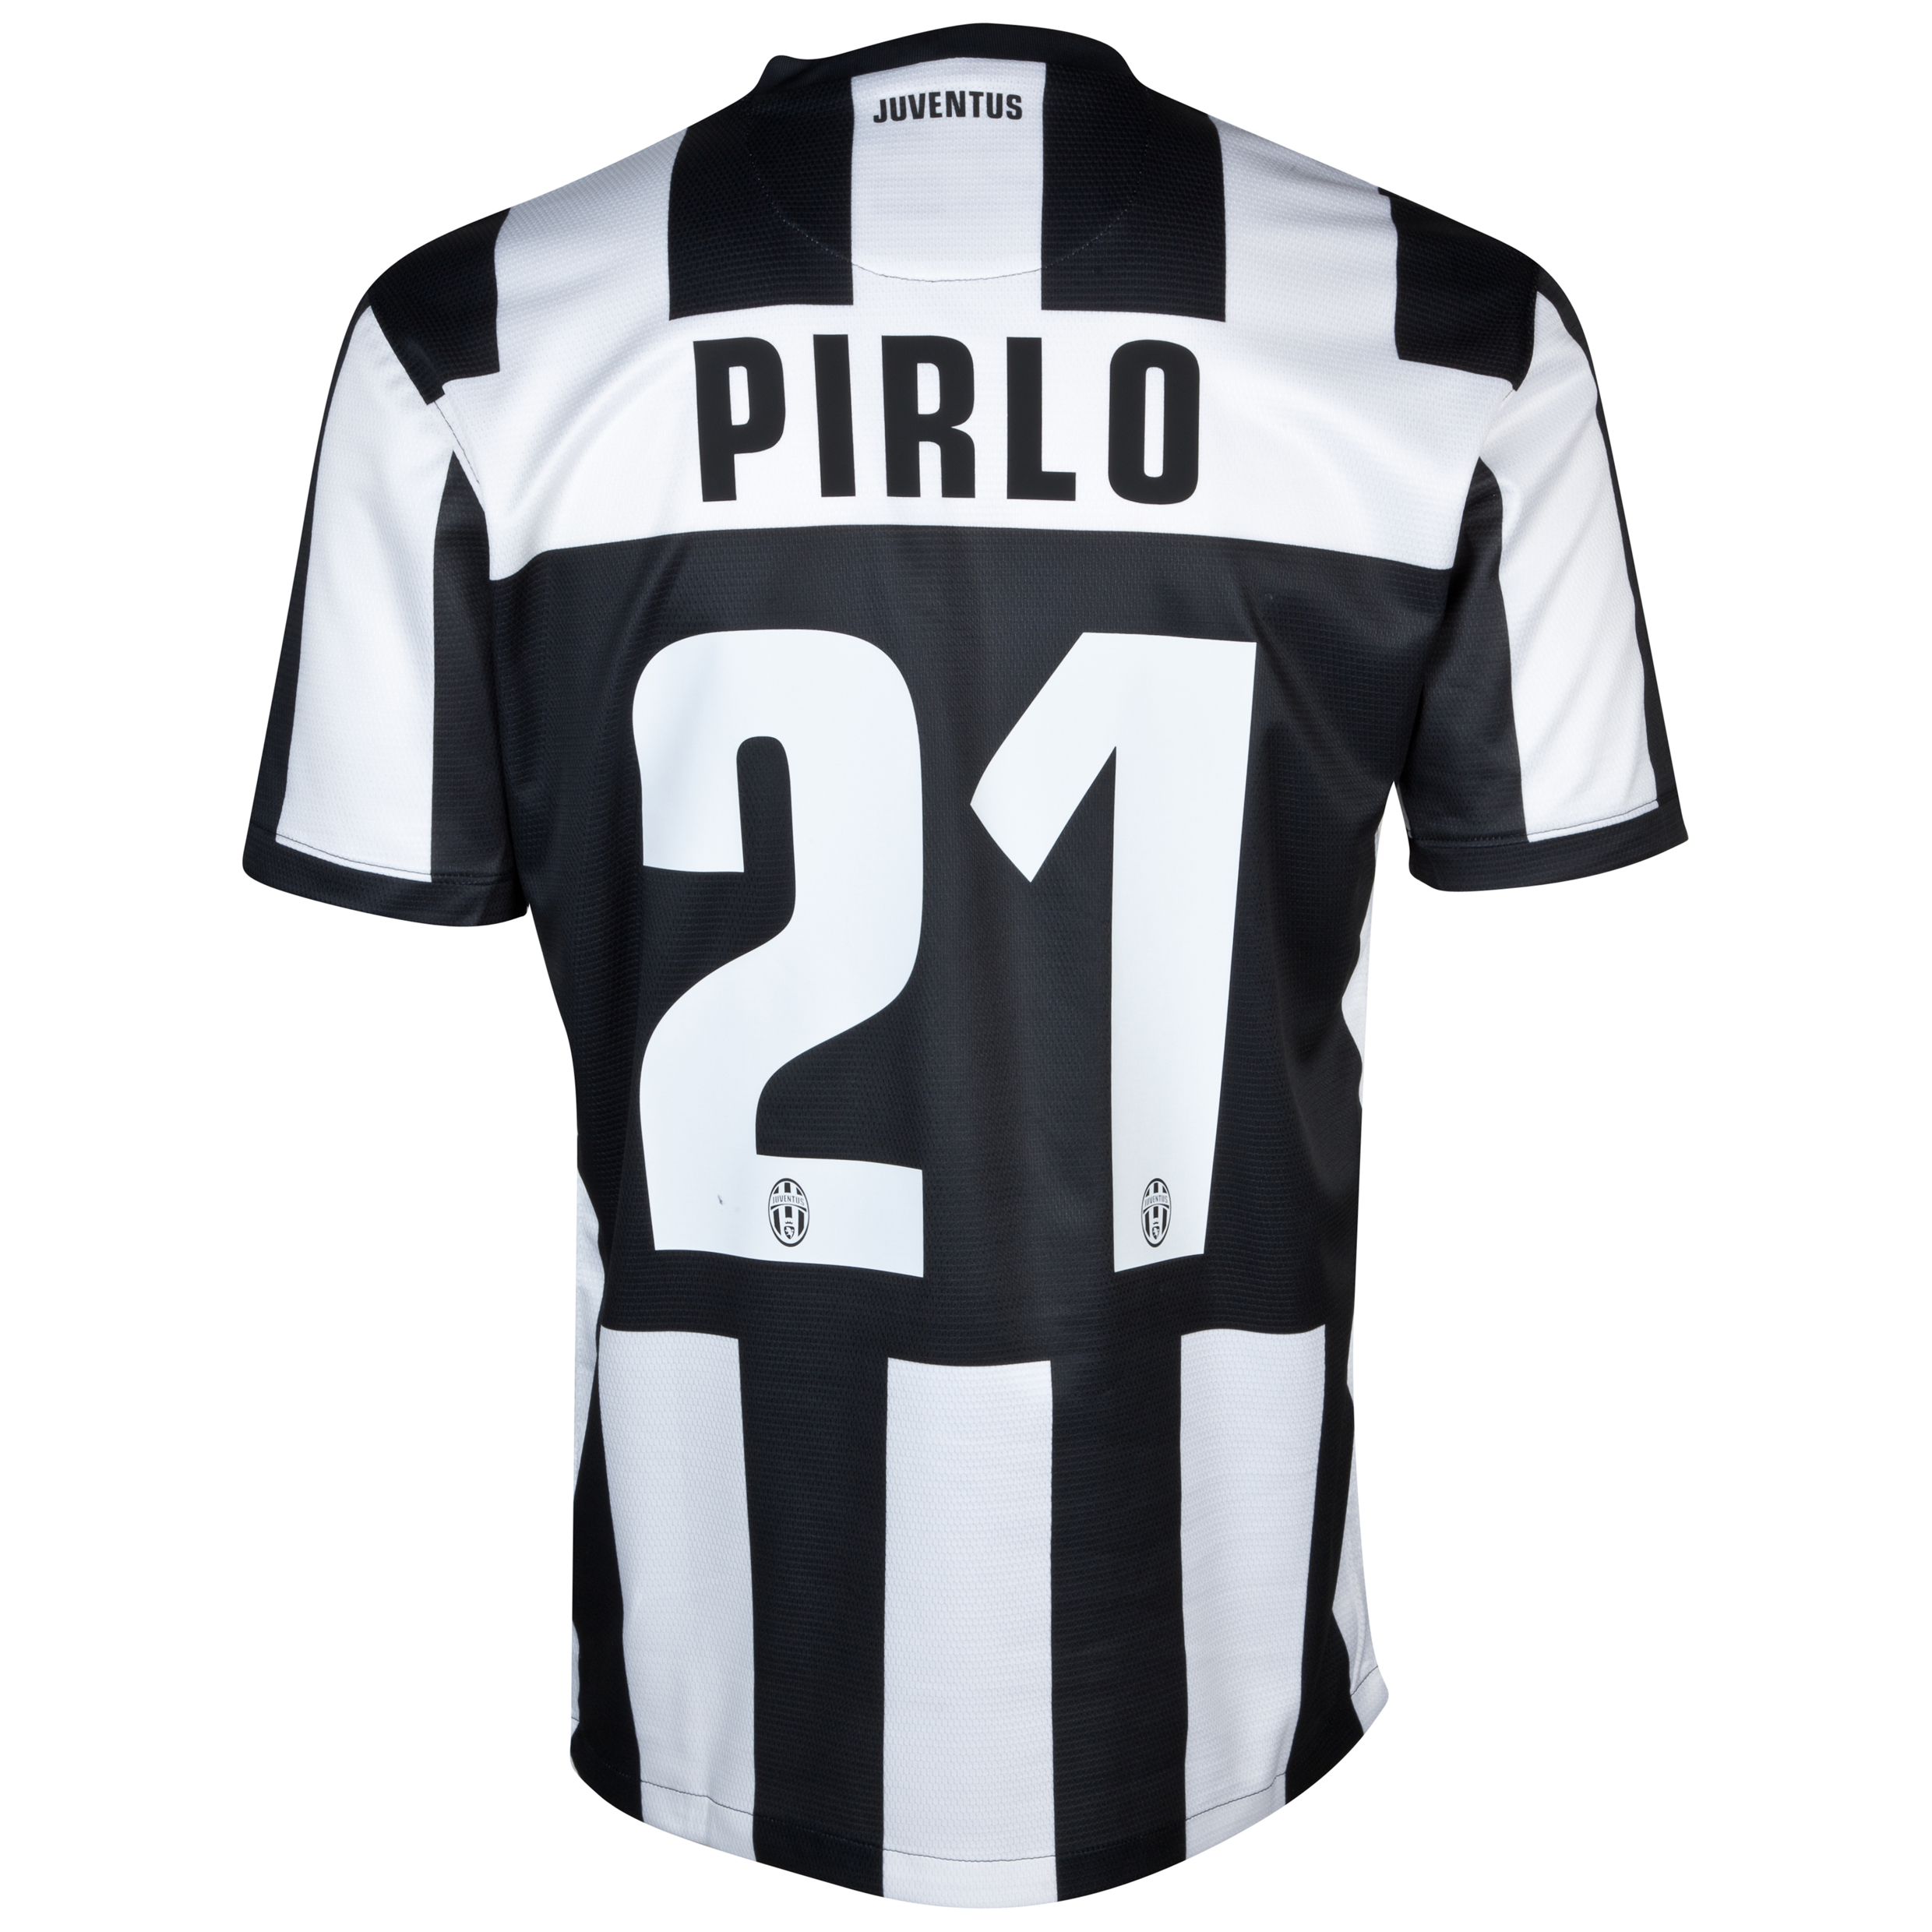 Juventus Home Shirt 2012/13 with Pirlo 21 printing